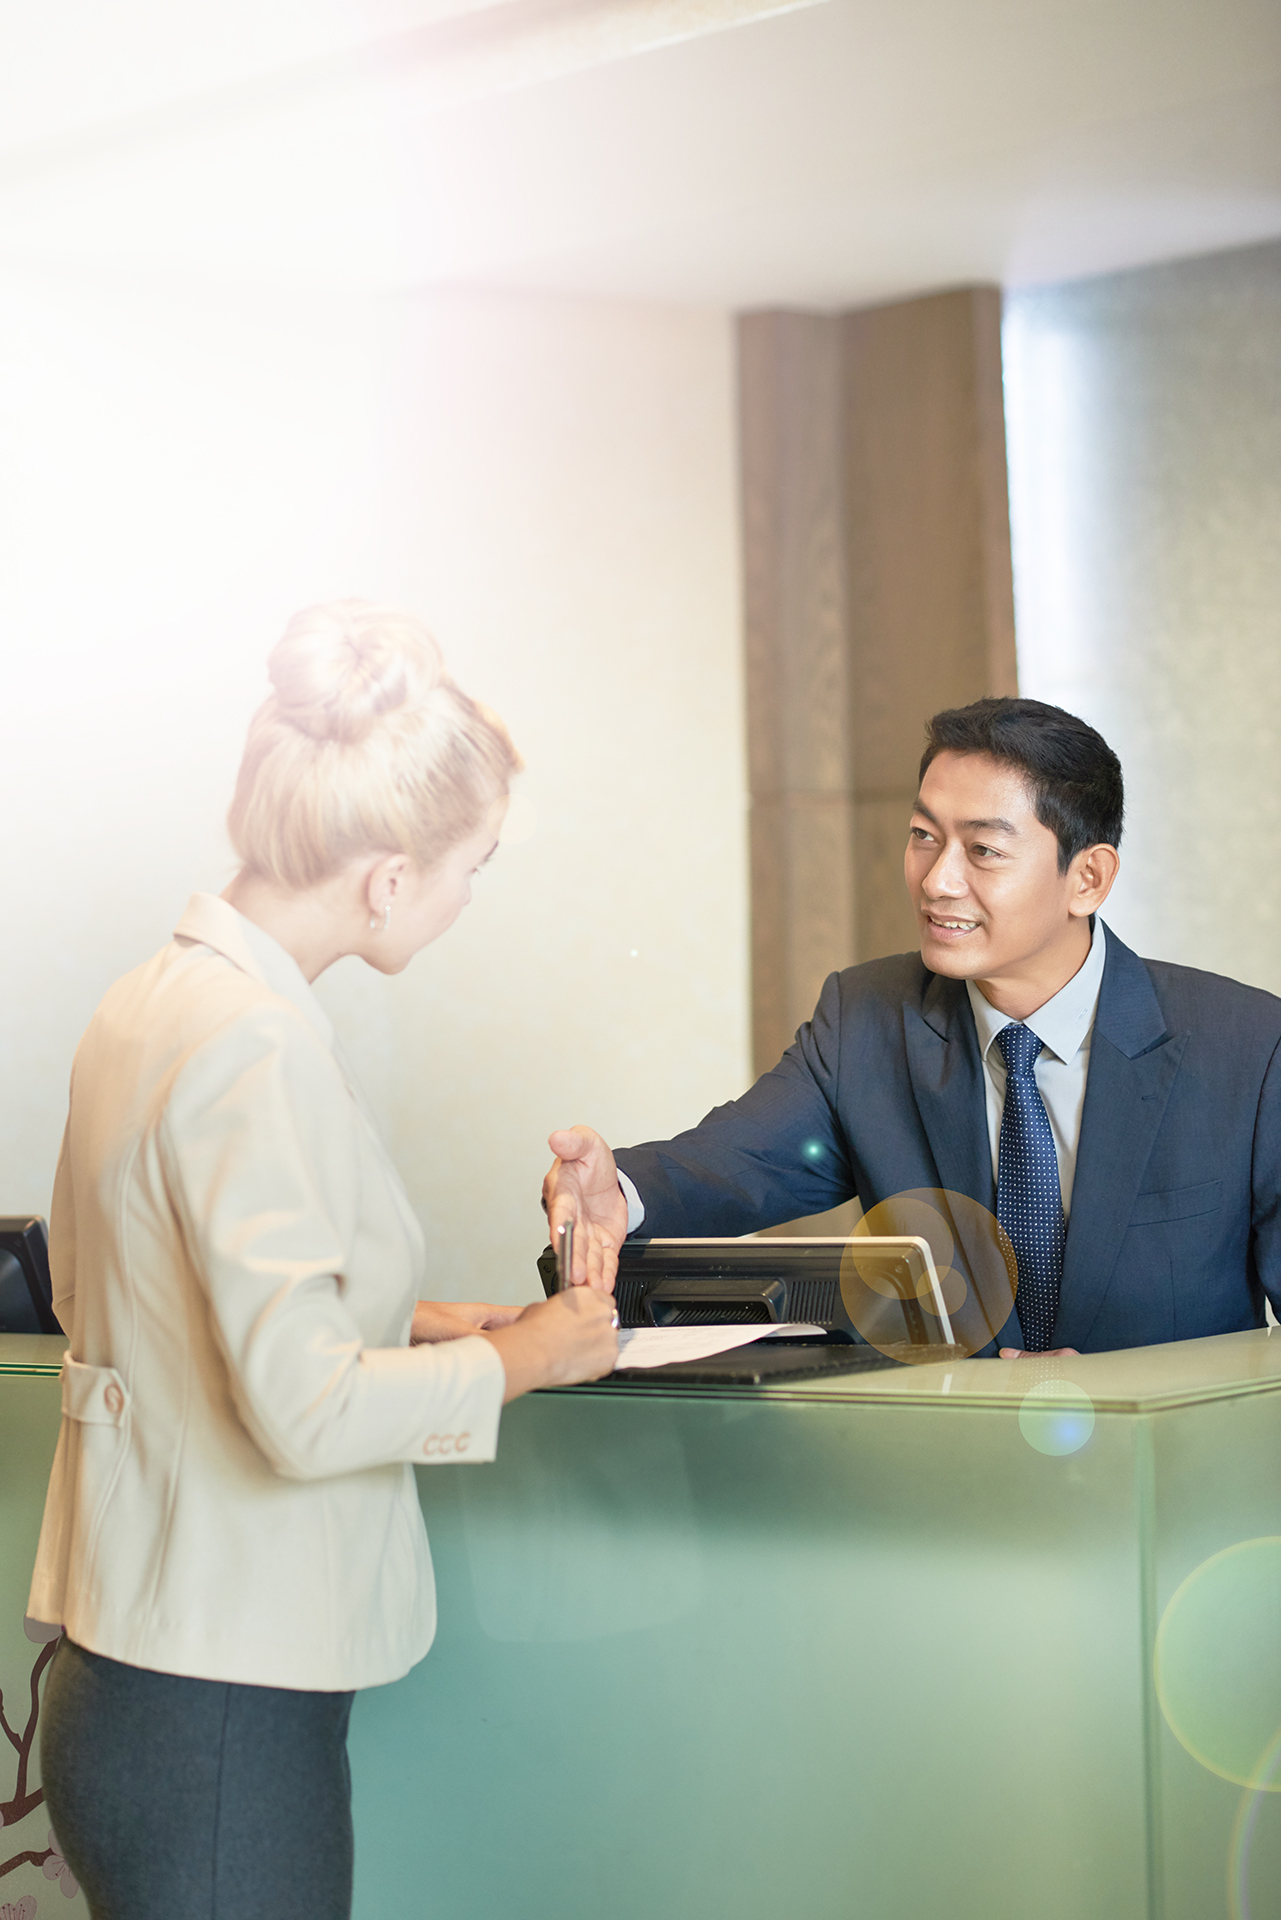 Business lady filling document on reception of hotel or office building